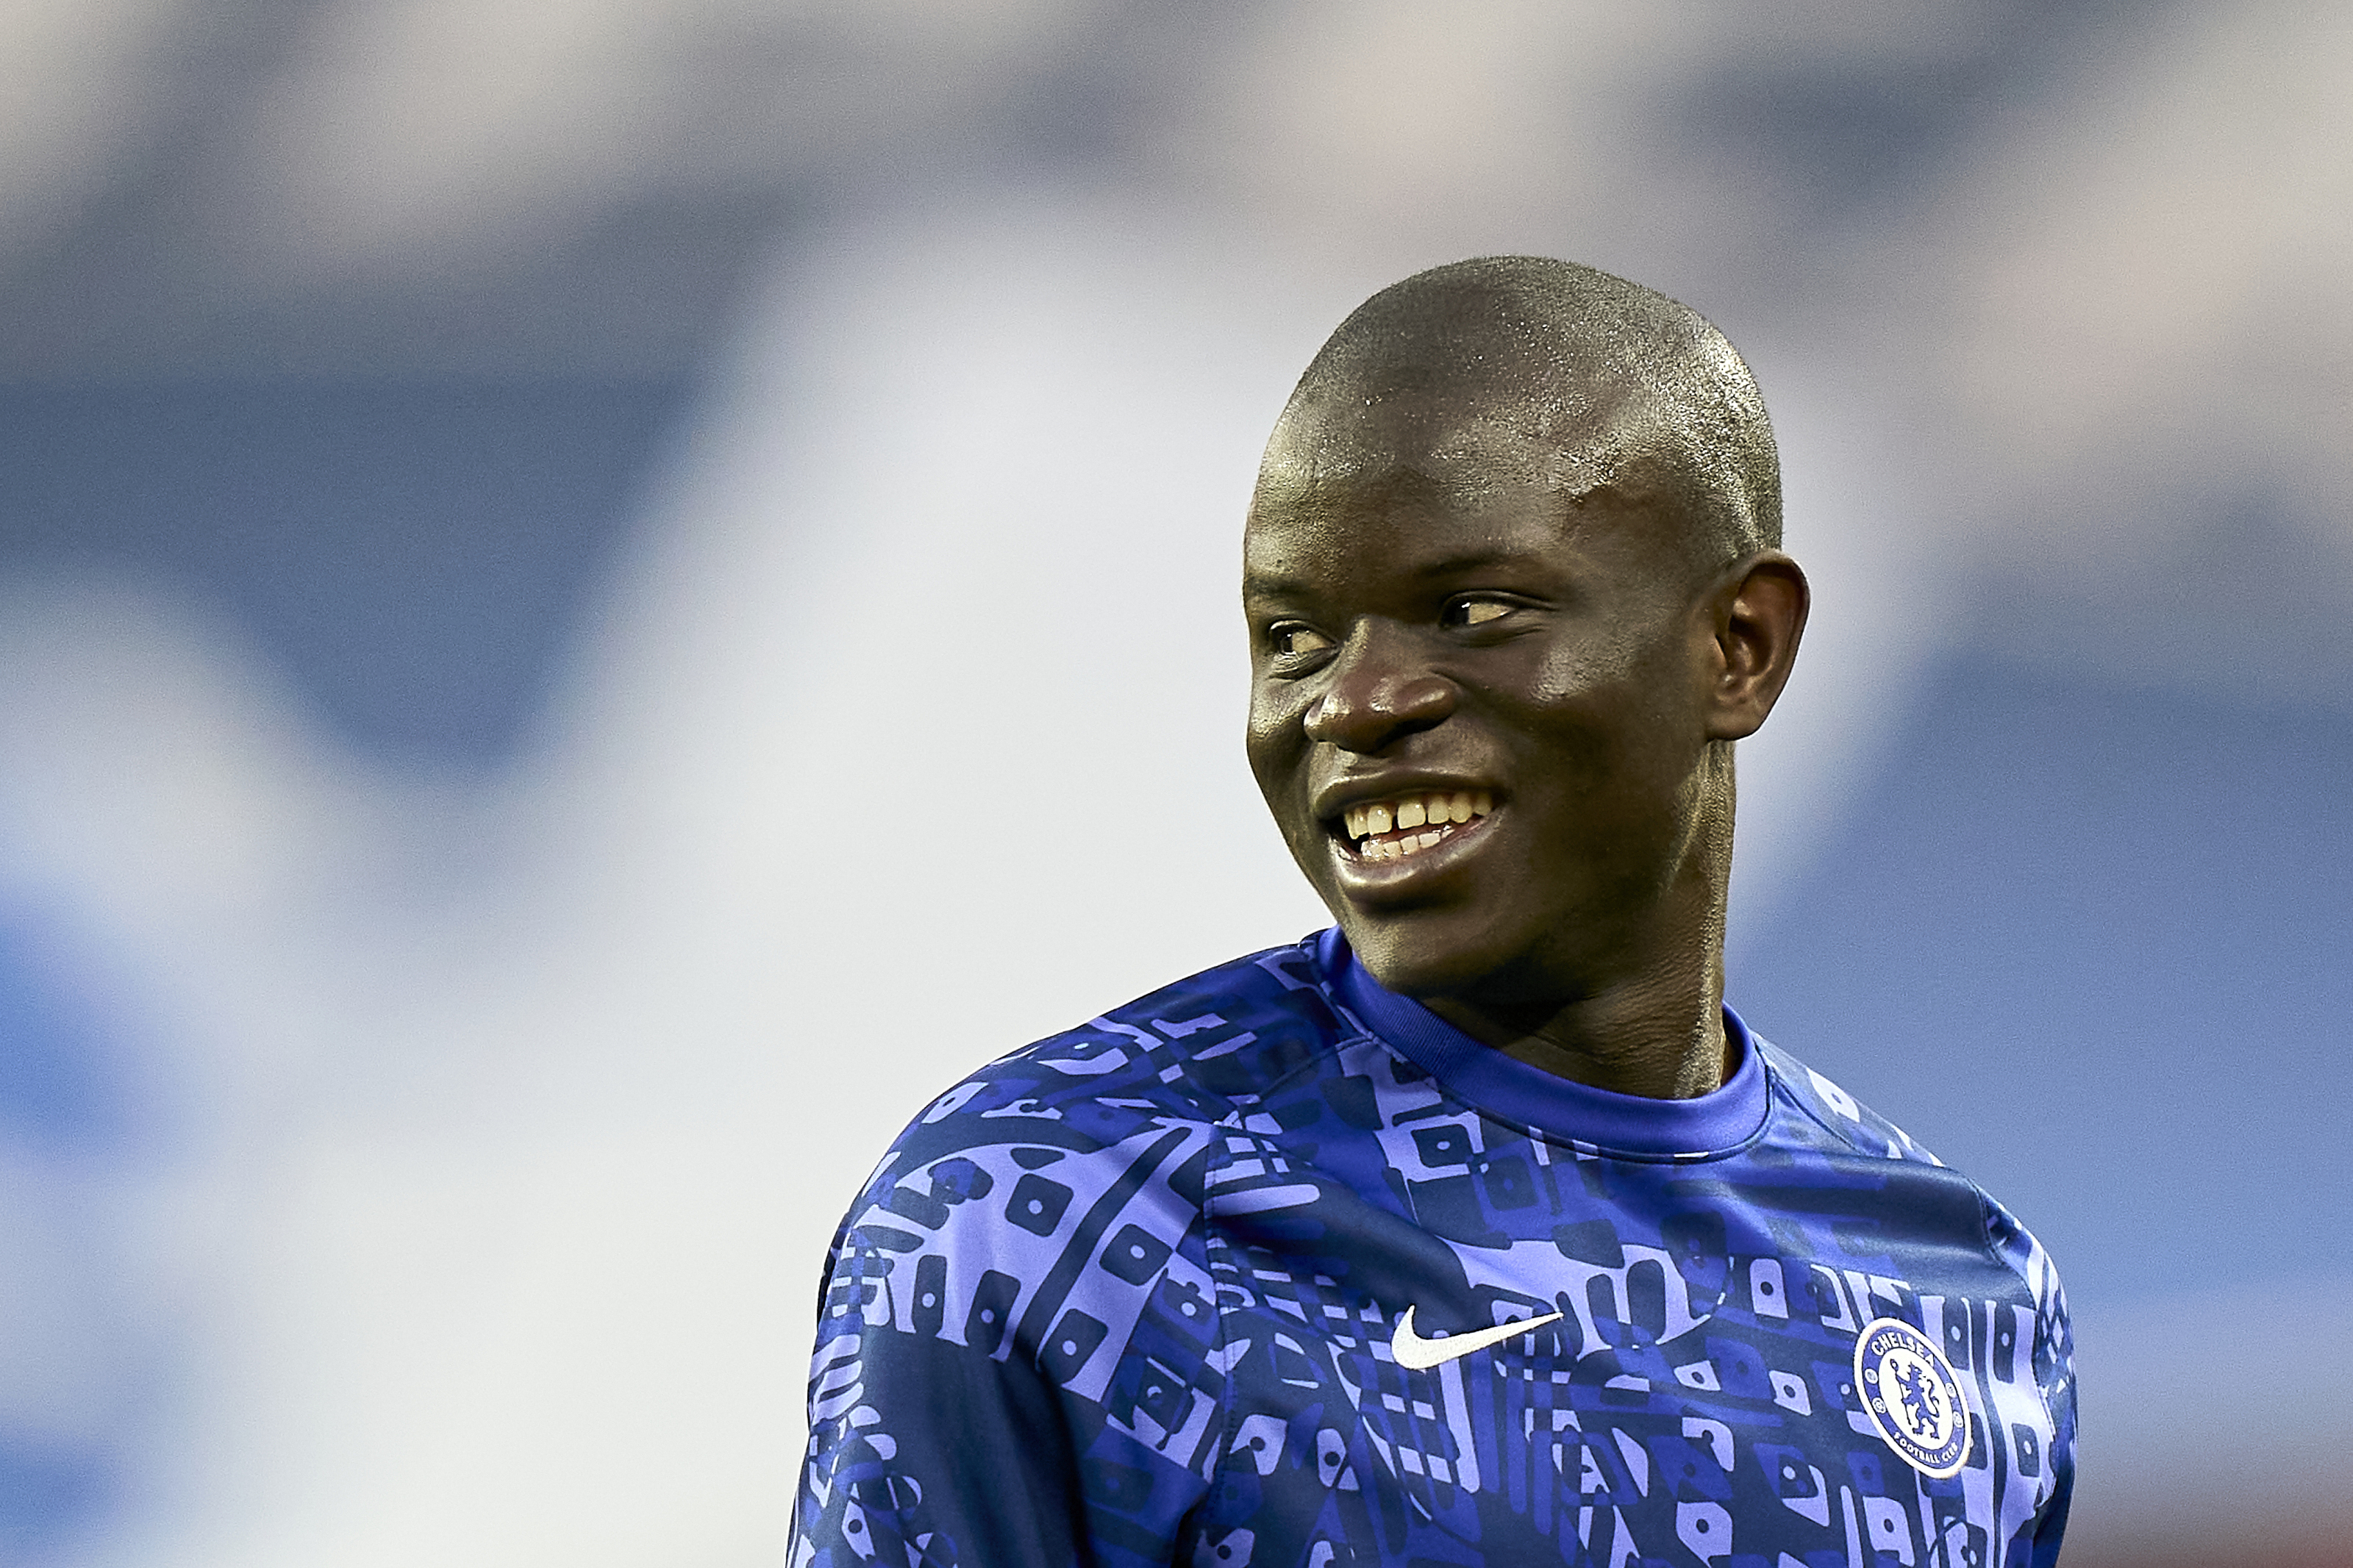 N'Golo Kante's 2020/21 heroics will be rewarded greatly by Chelsea